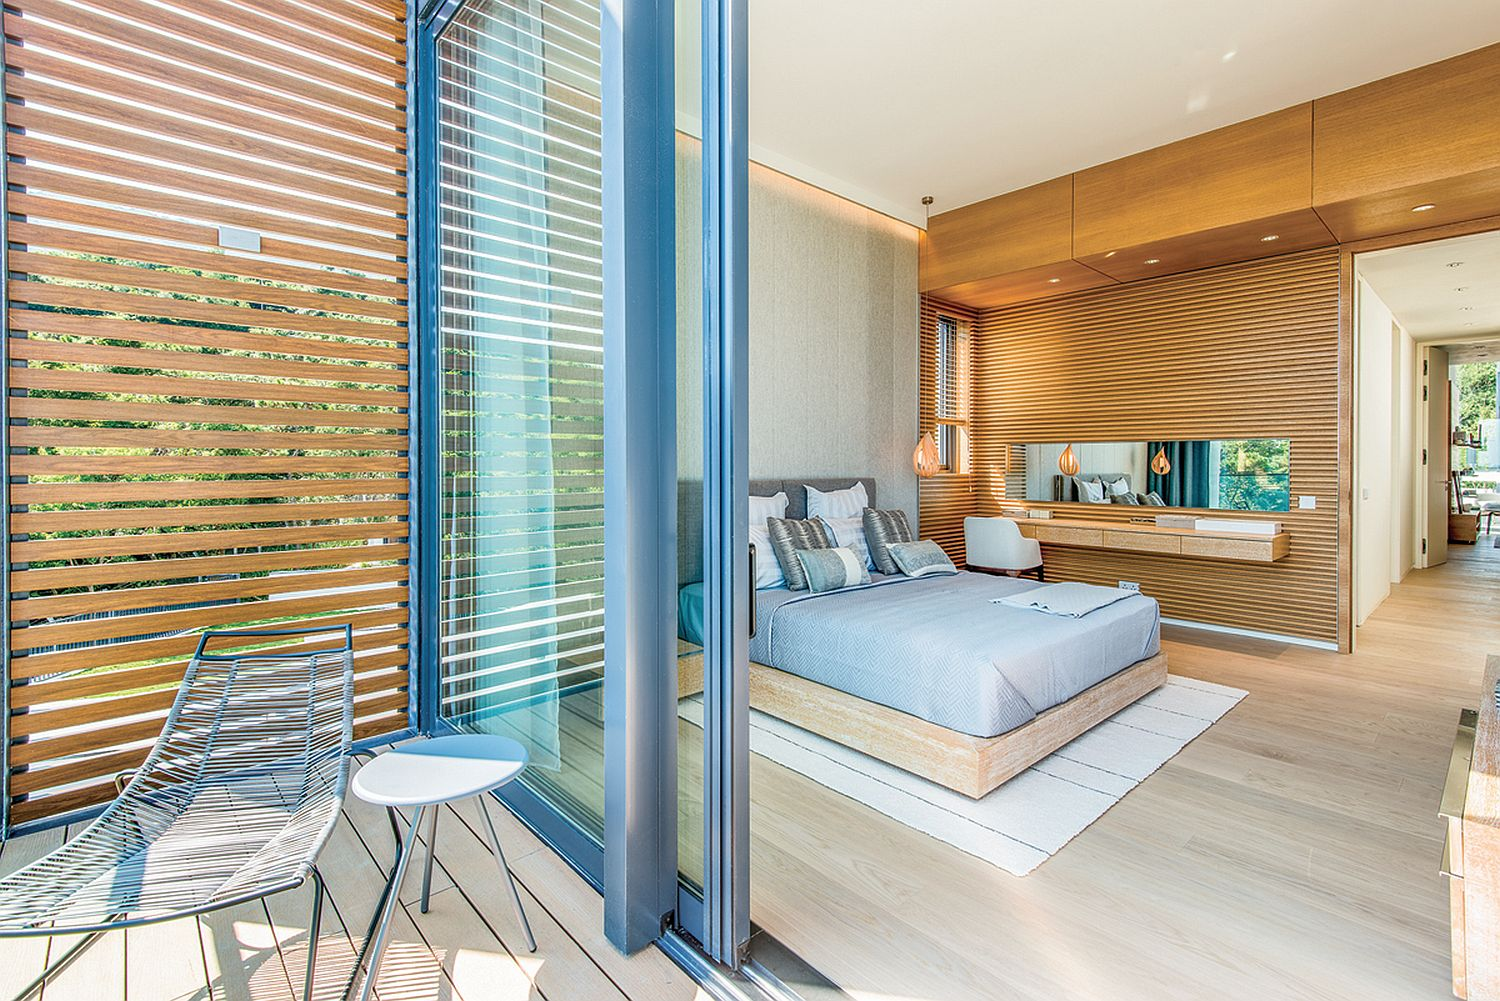 Sliding-glass-doors-connect-the-master-bedroom-with-the-balcony-outside